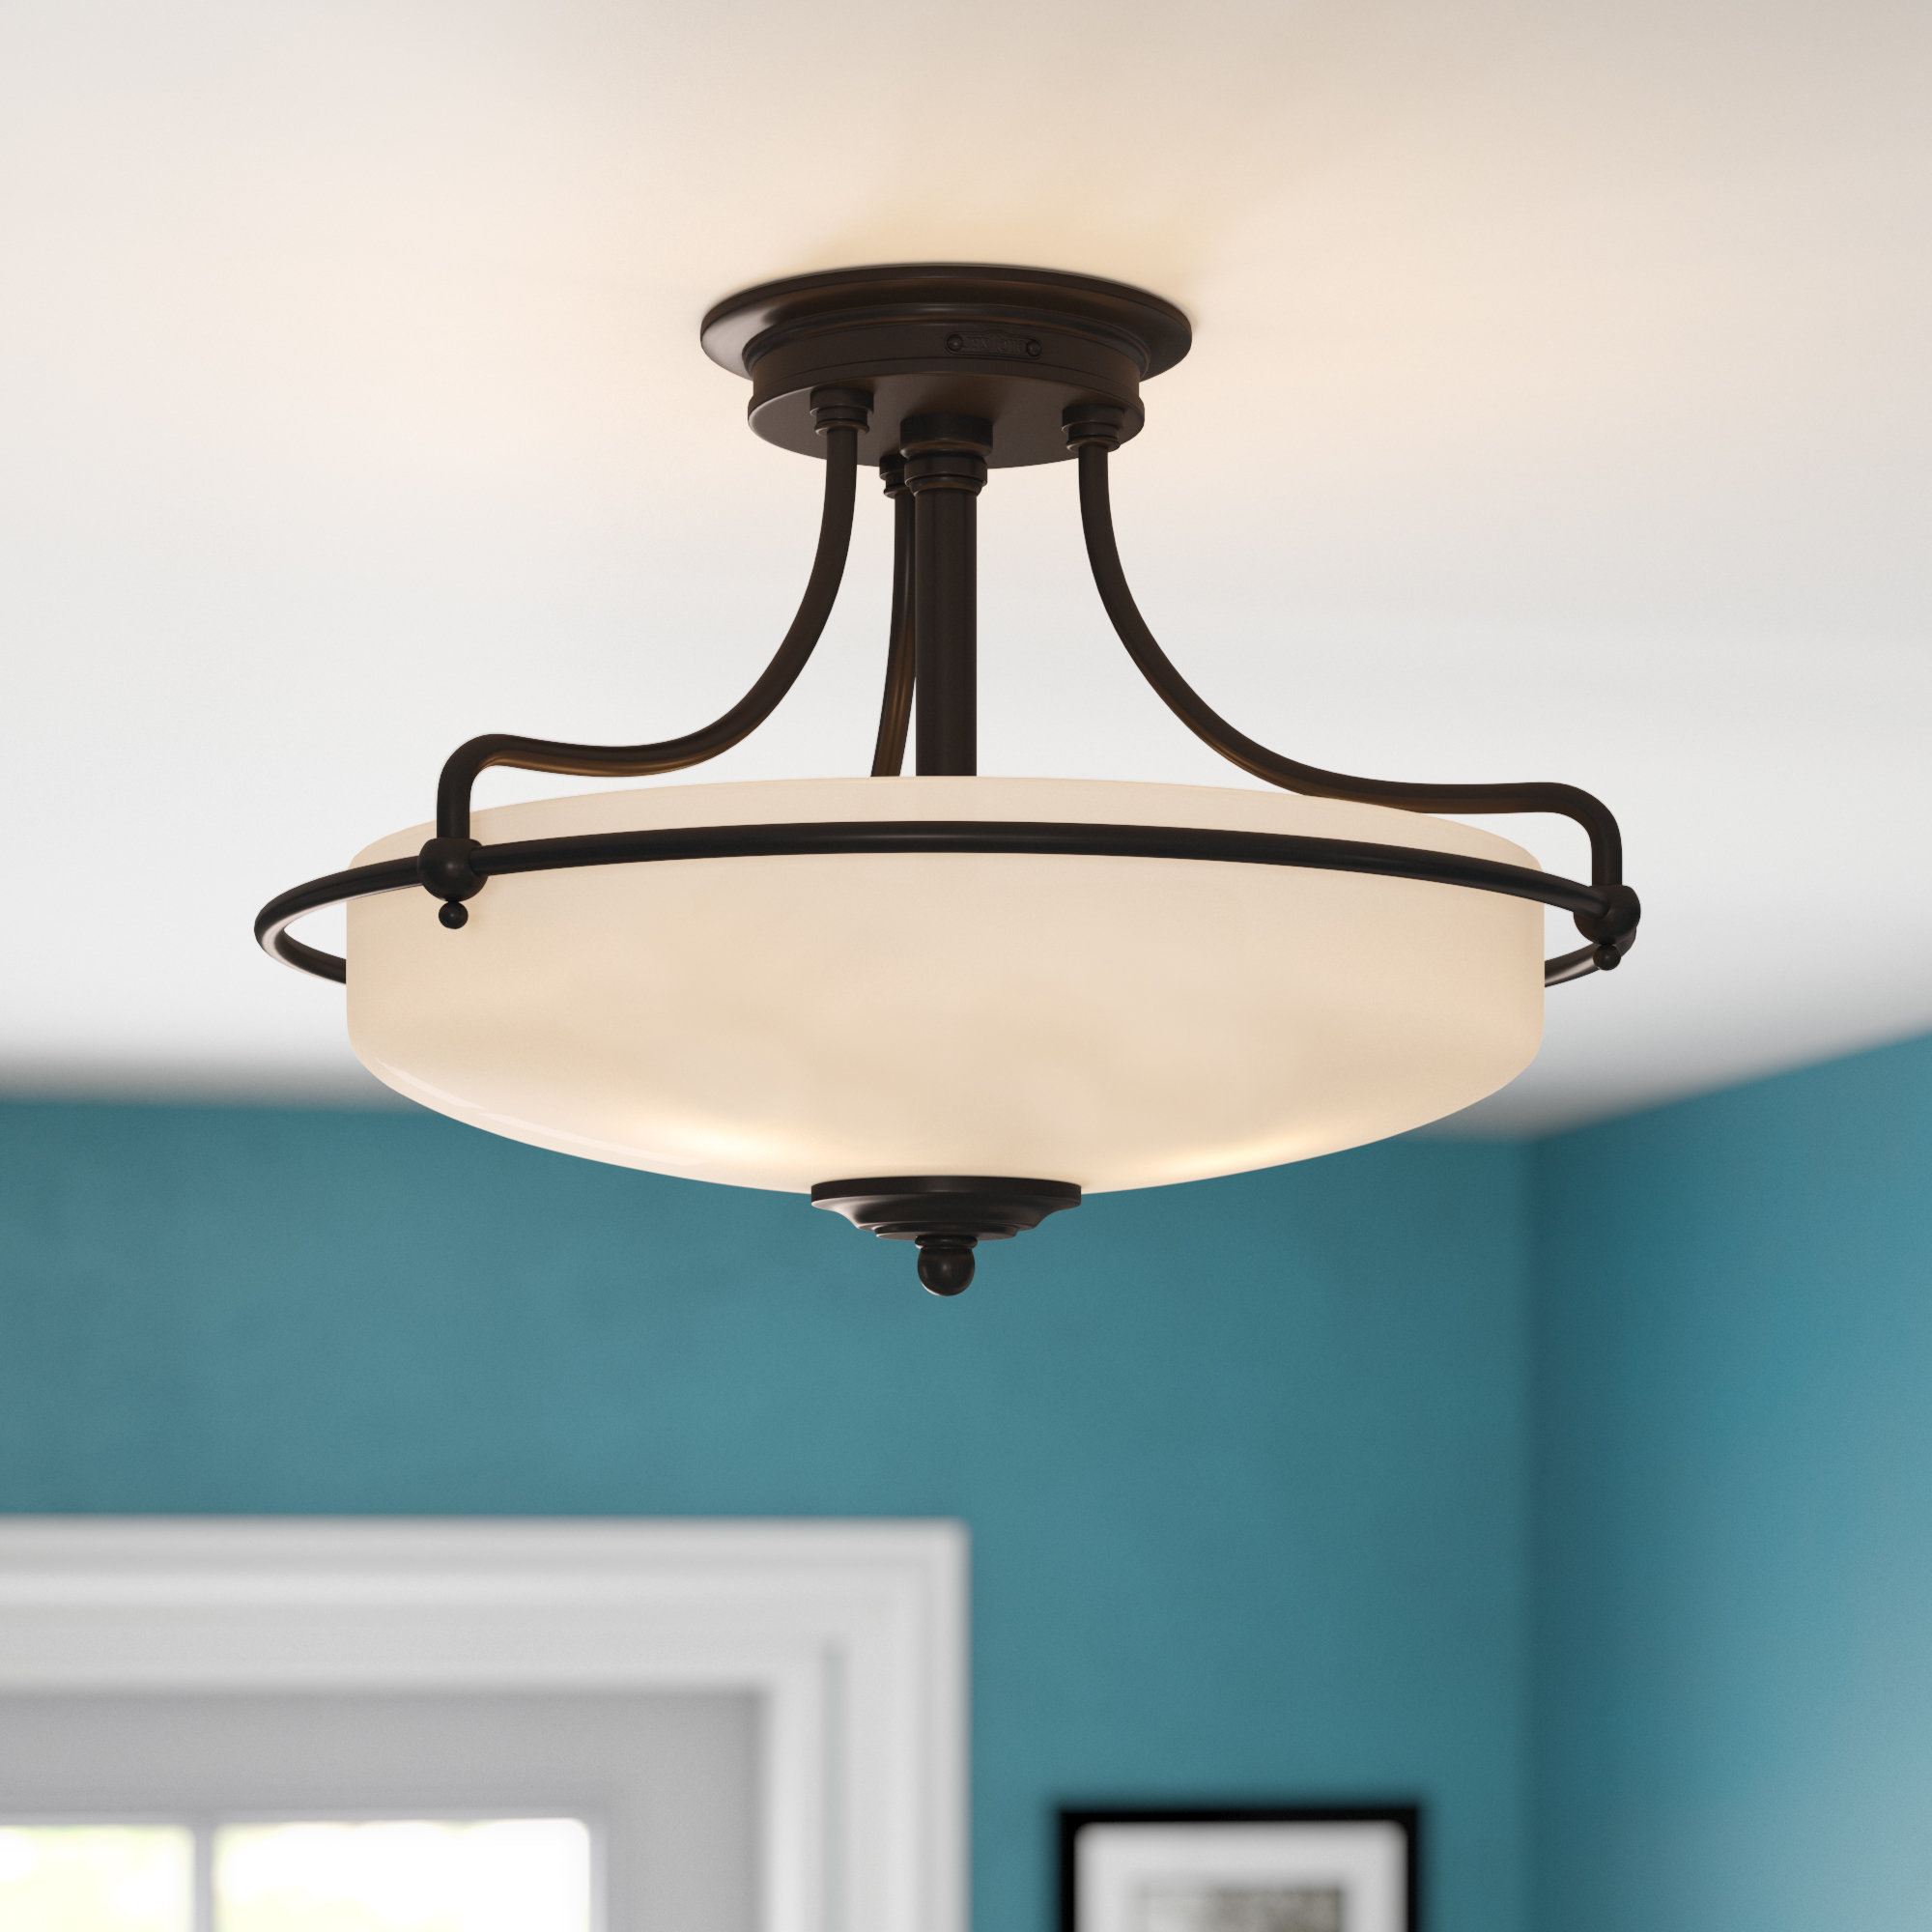 Well Known Red Barrel Studio Abernathy 1 Light Dome Pendant & Reviews With Regard To Abernathy 1 Light Dome Pendants (View 6 of 20)